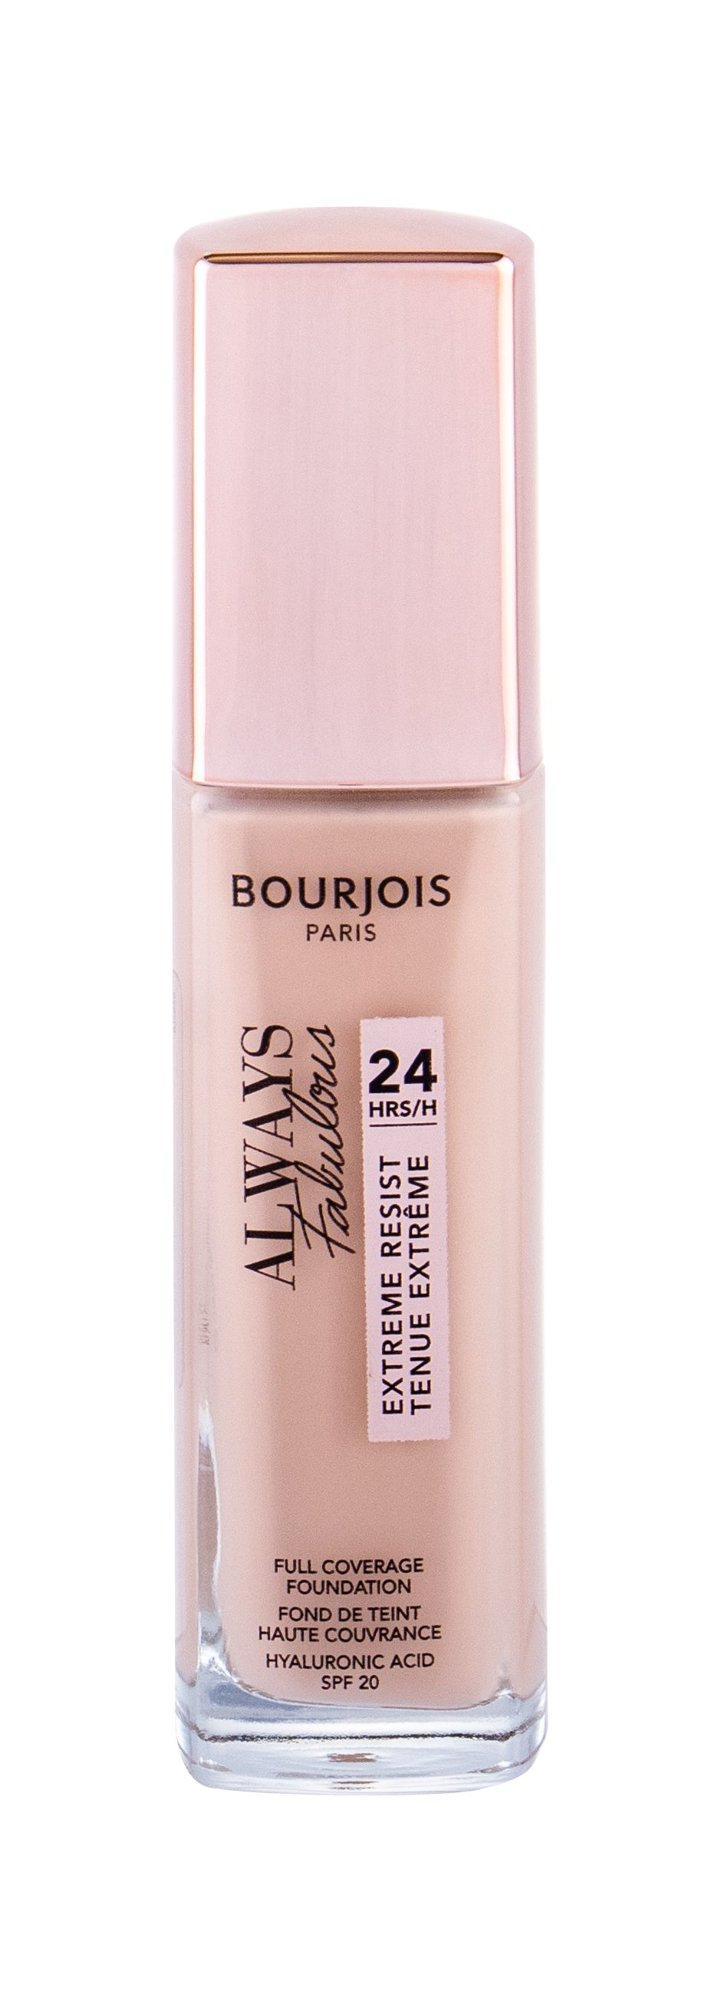 BOURJOIS Paris Always Fabulous SPF20 Makeup, W, 30 ml